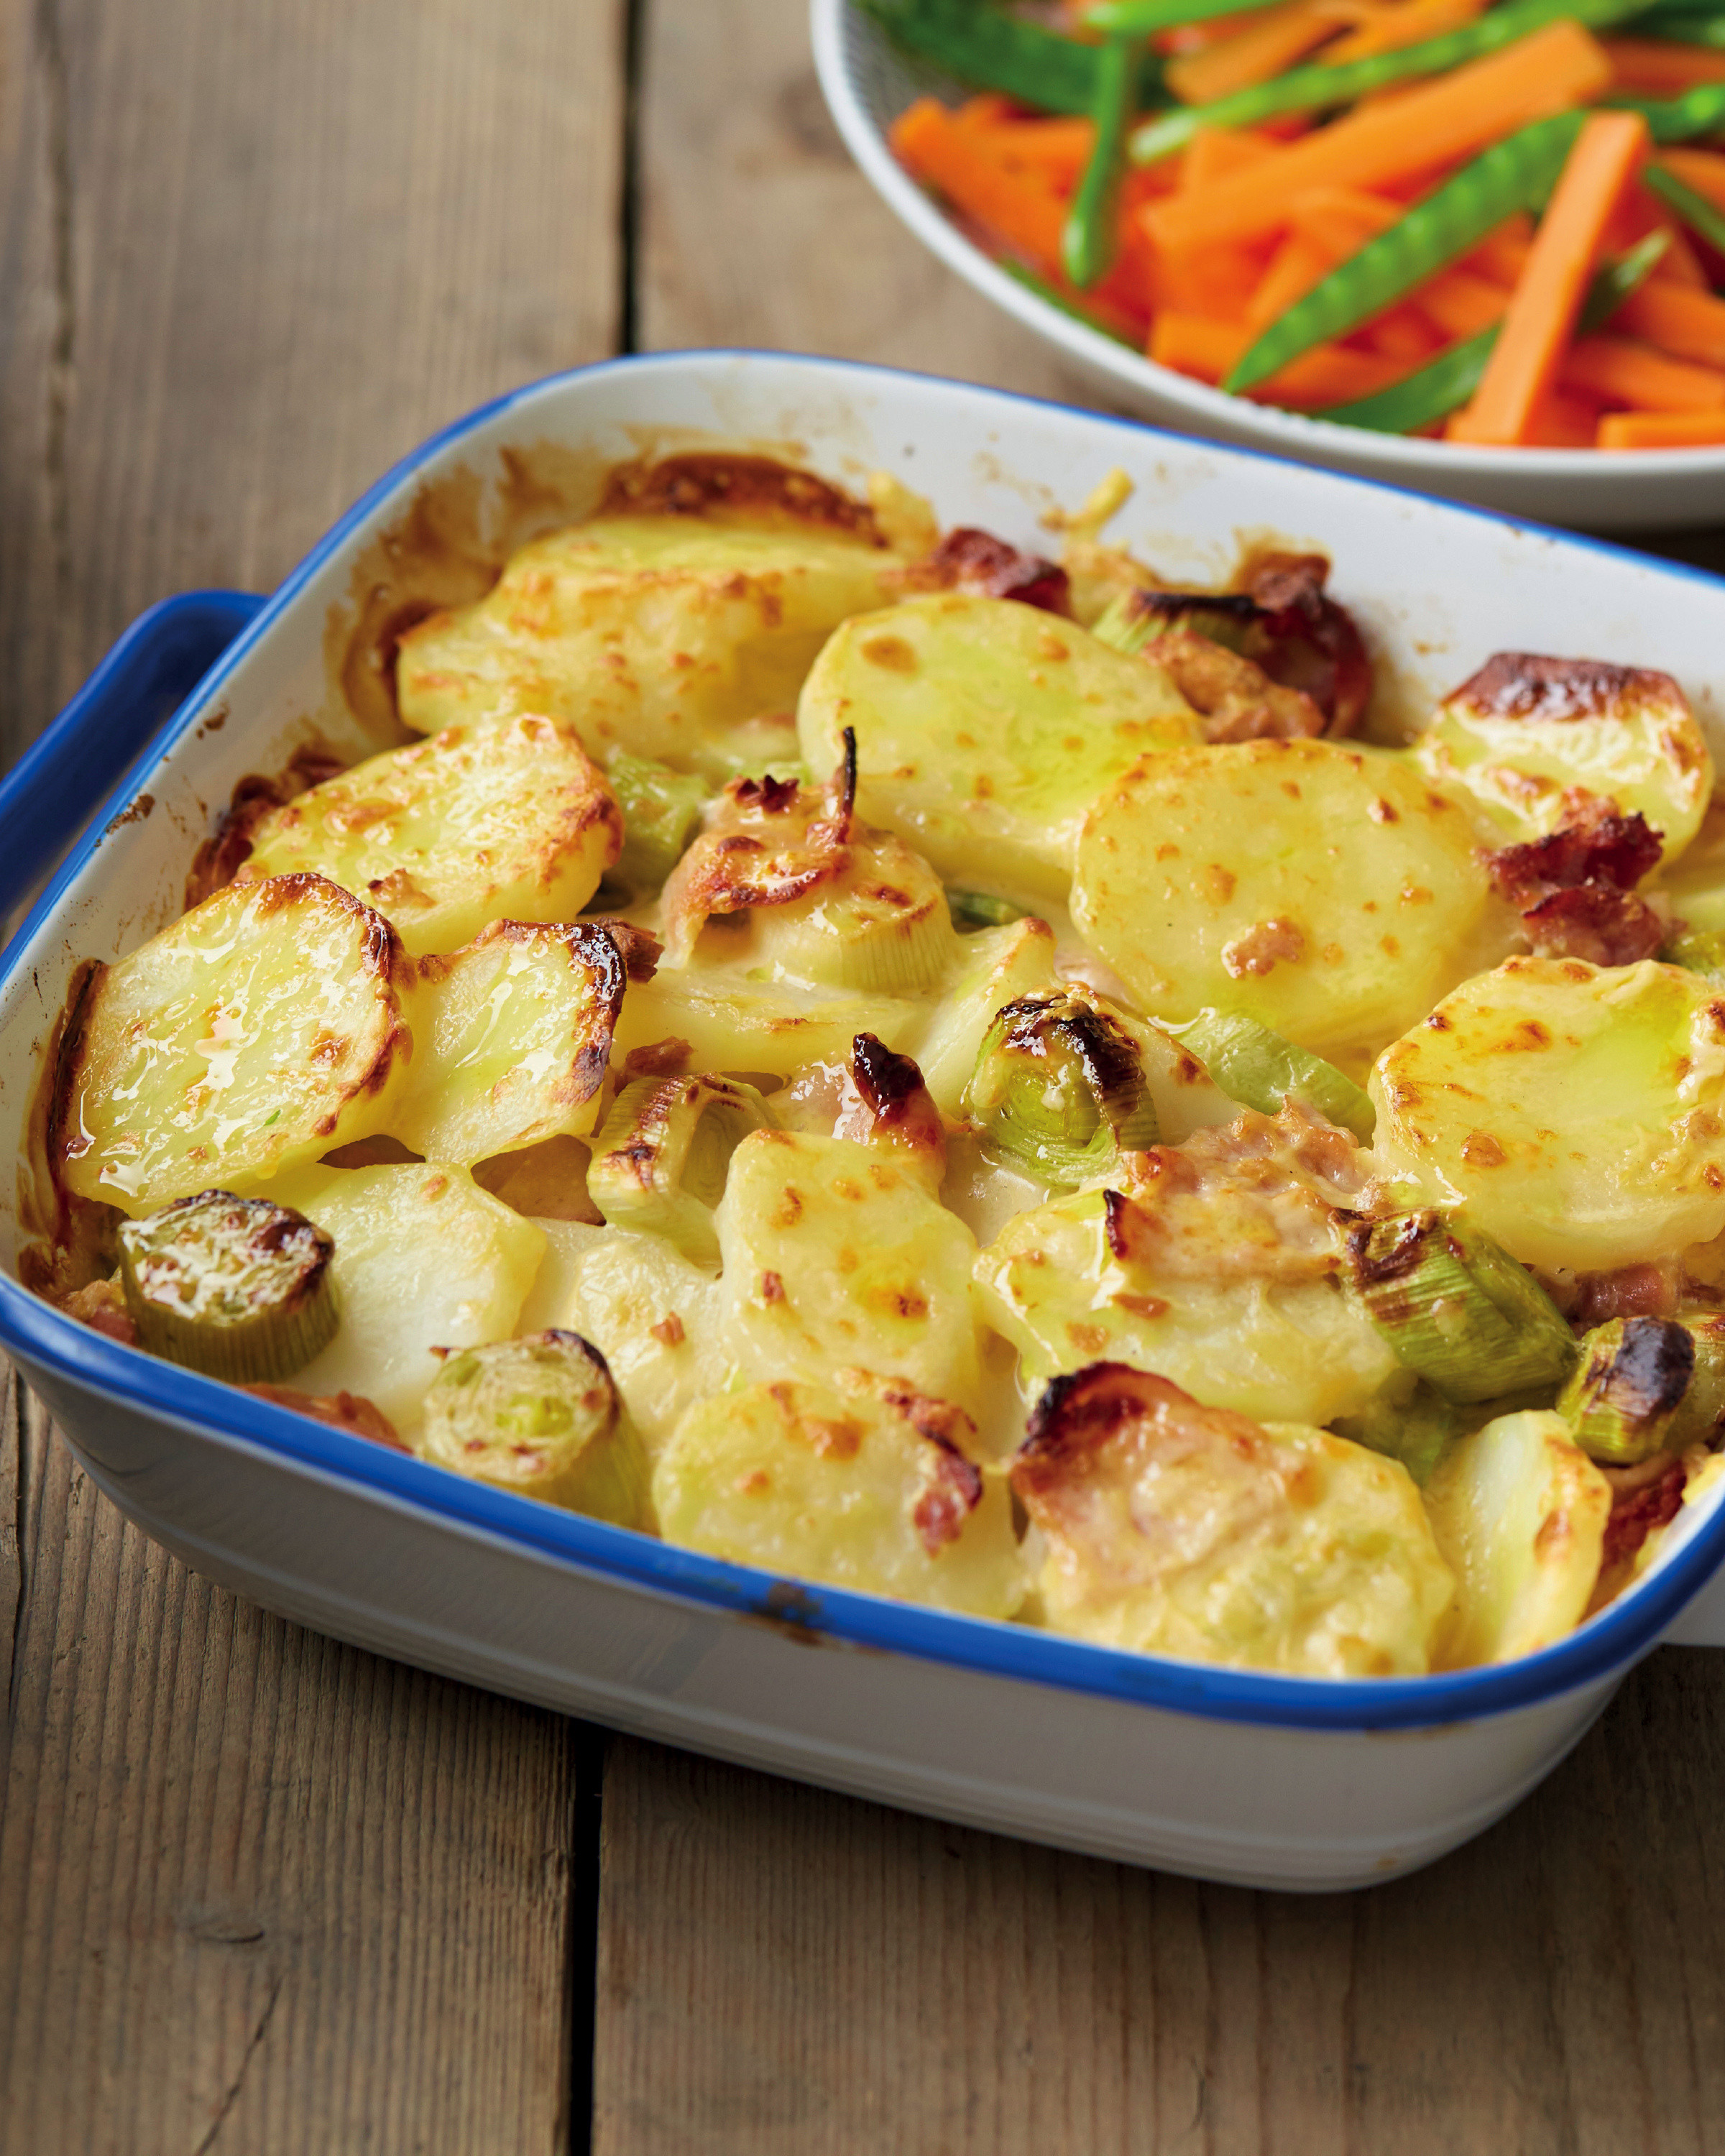 Bacon, Potato & Leek Bake with Carrots & Mangetout - ALDI UK